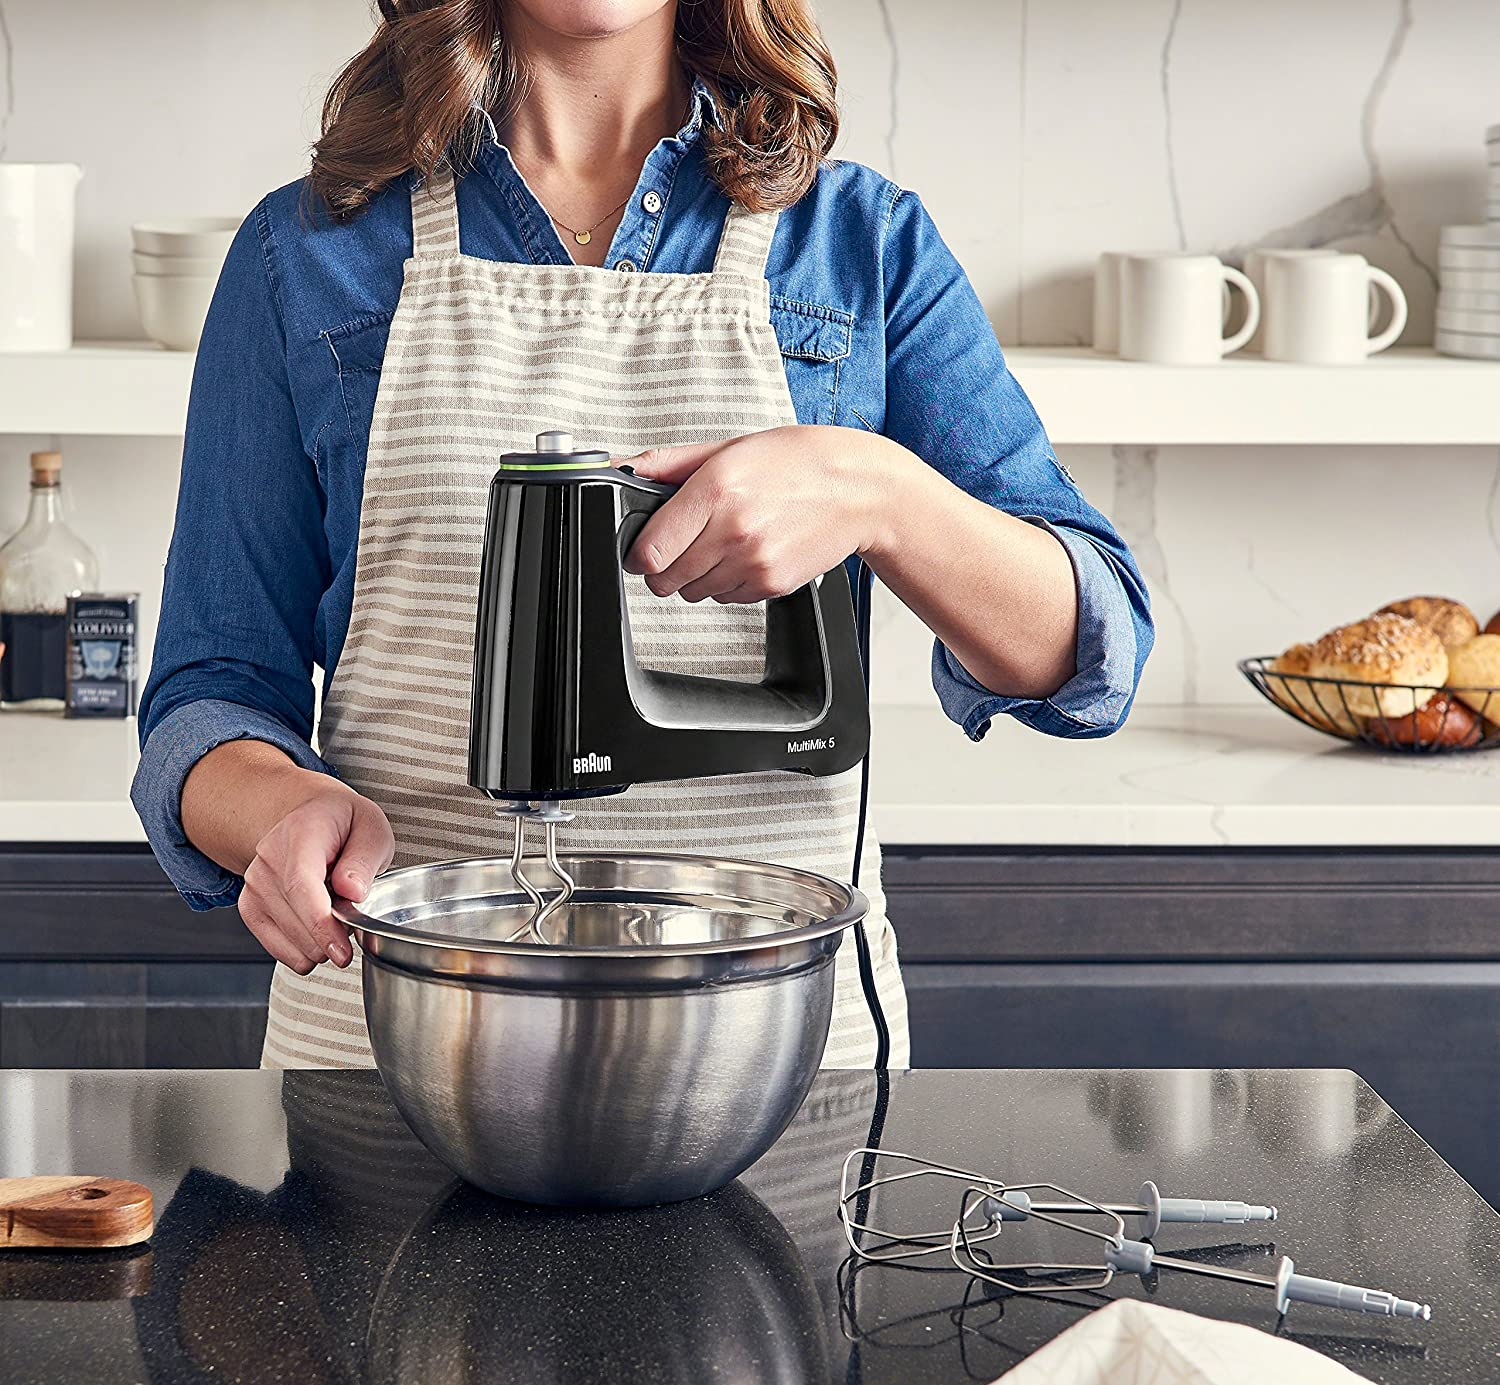 Braun hand mixer for cookie dough